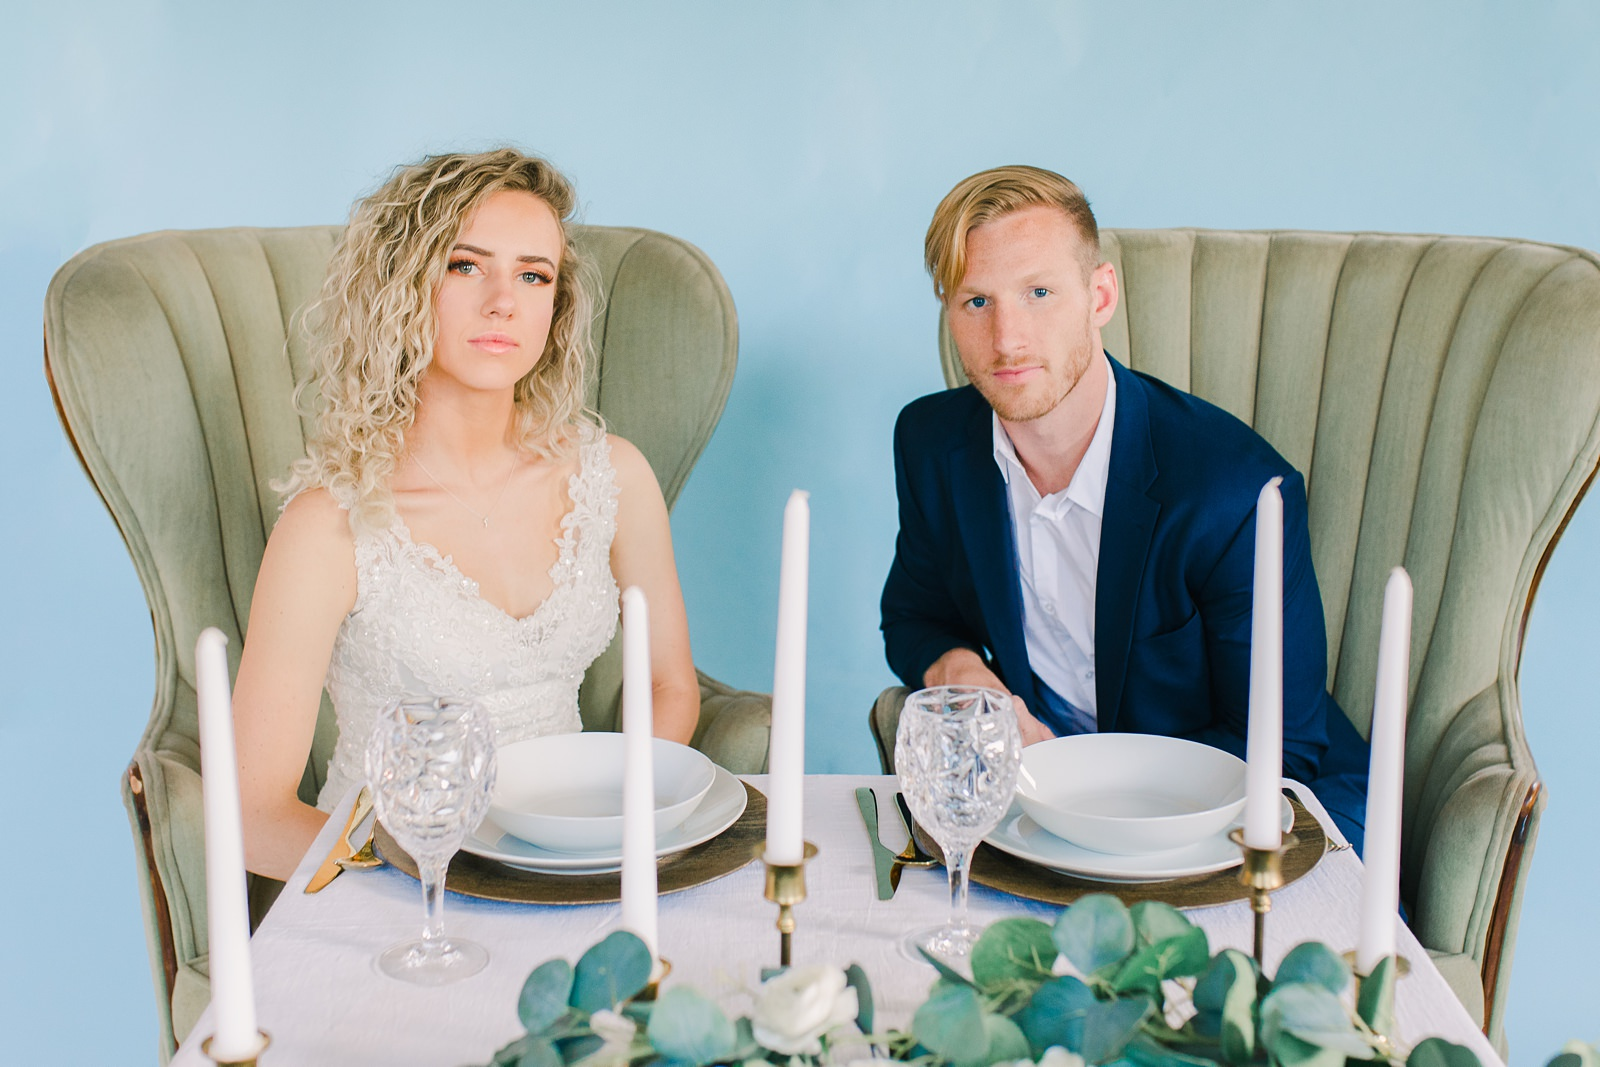 Utah wedding photography, bride and groom at sweetheart table with greenery garland with eucalyptus and white flowers and blue wall